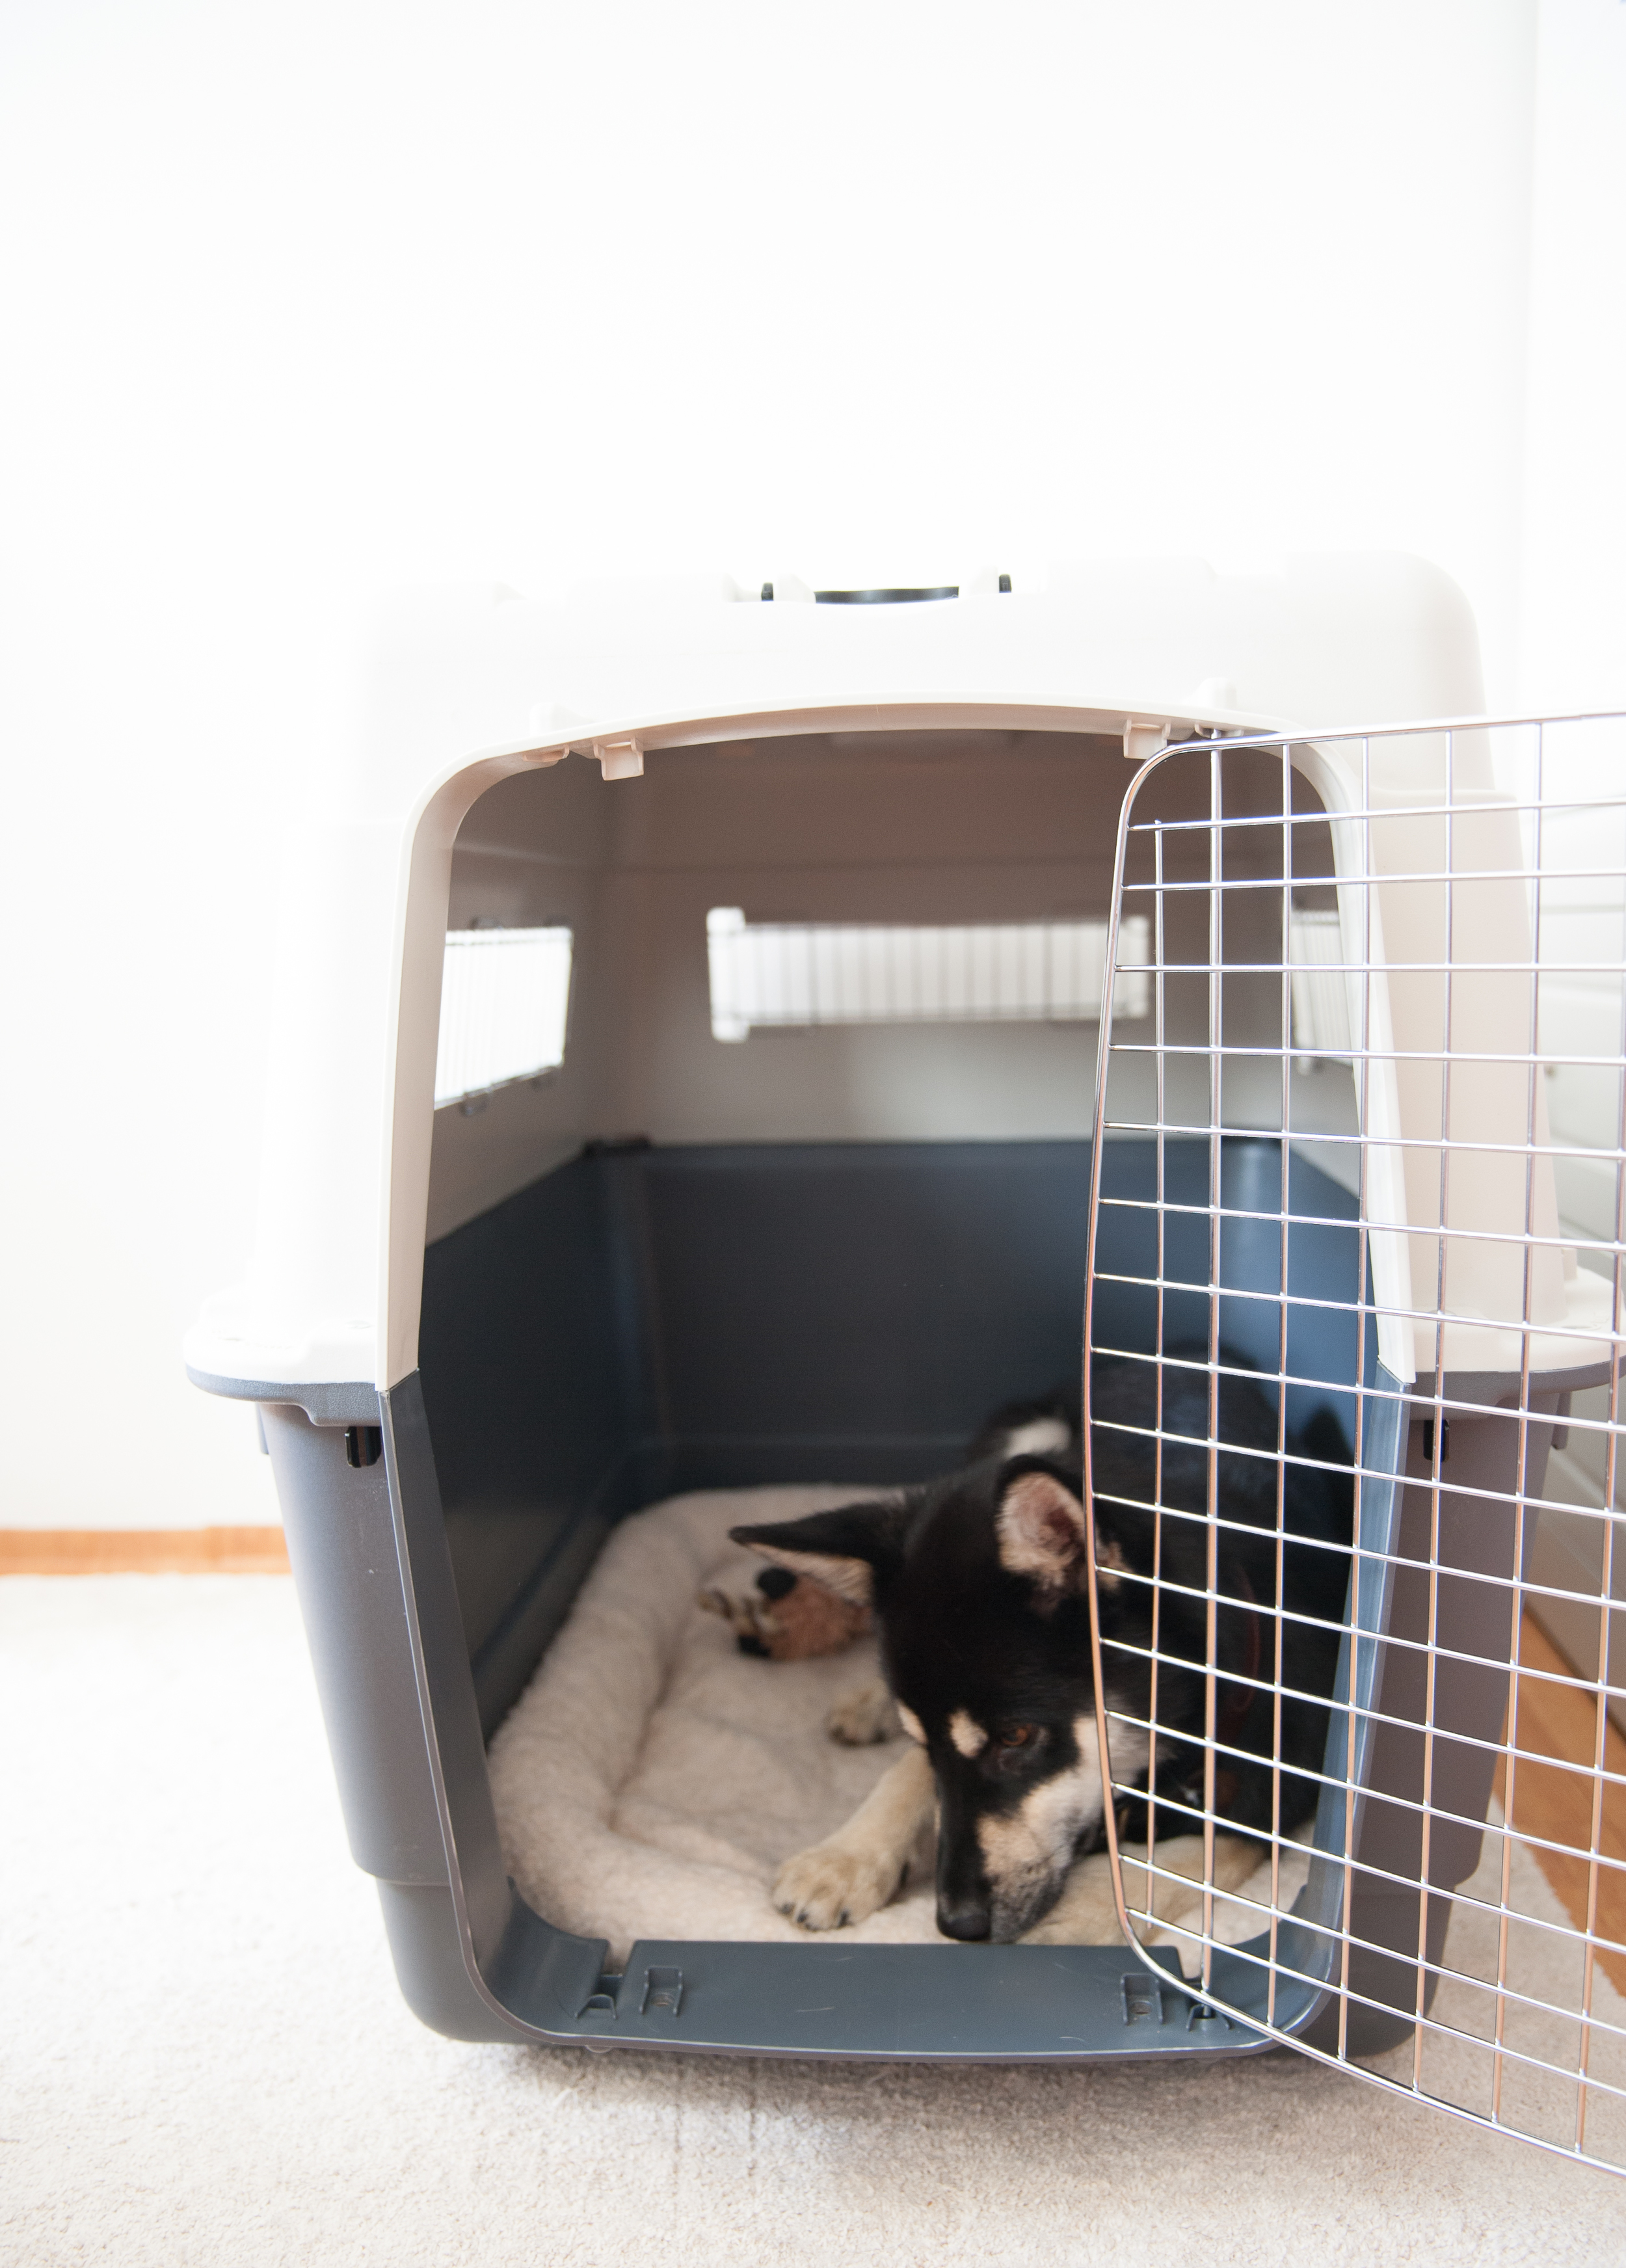 IATA Airline Approved Dog Crate